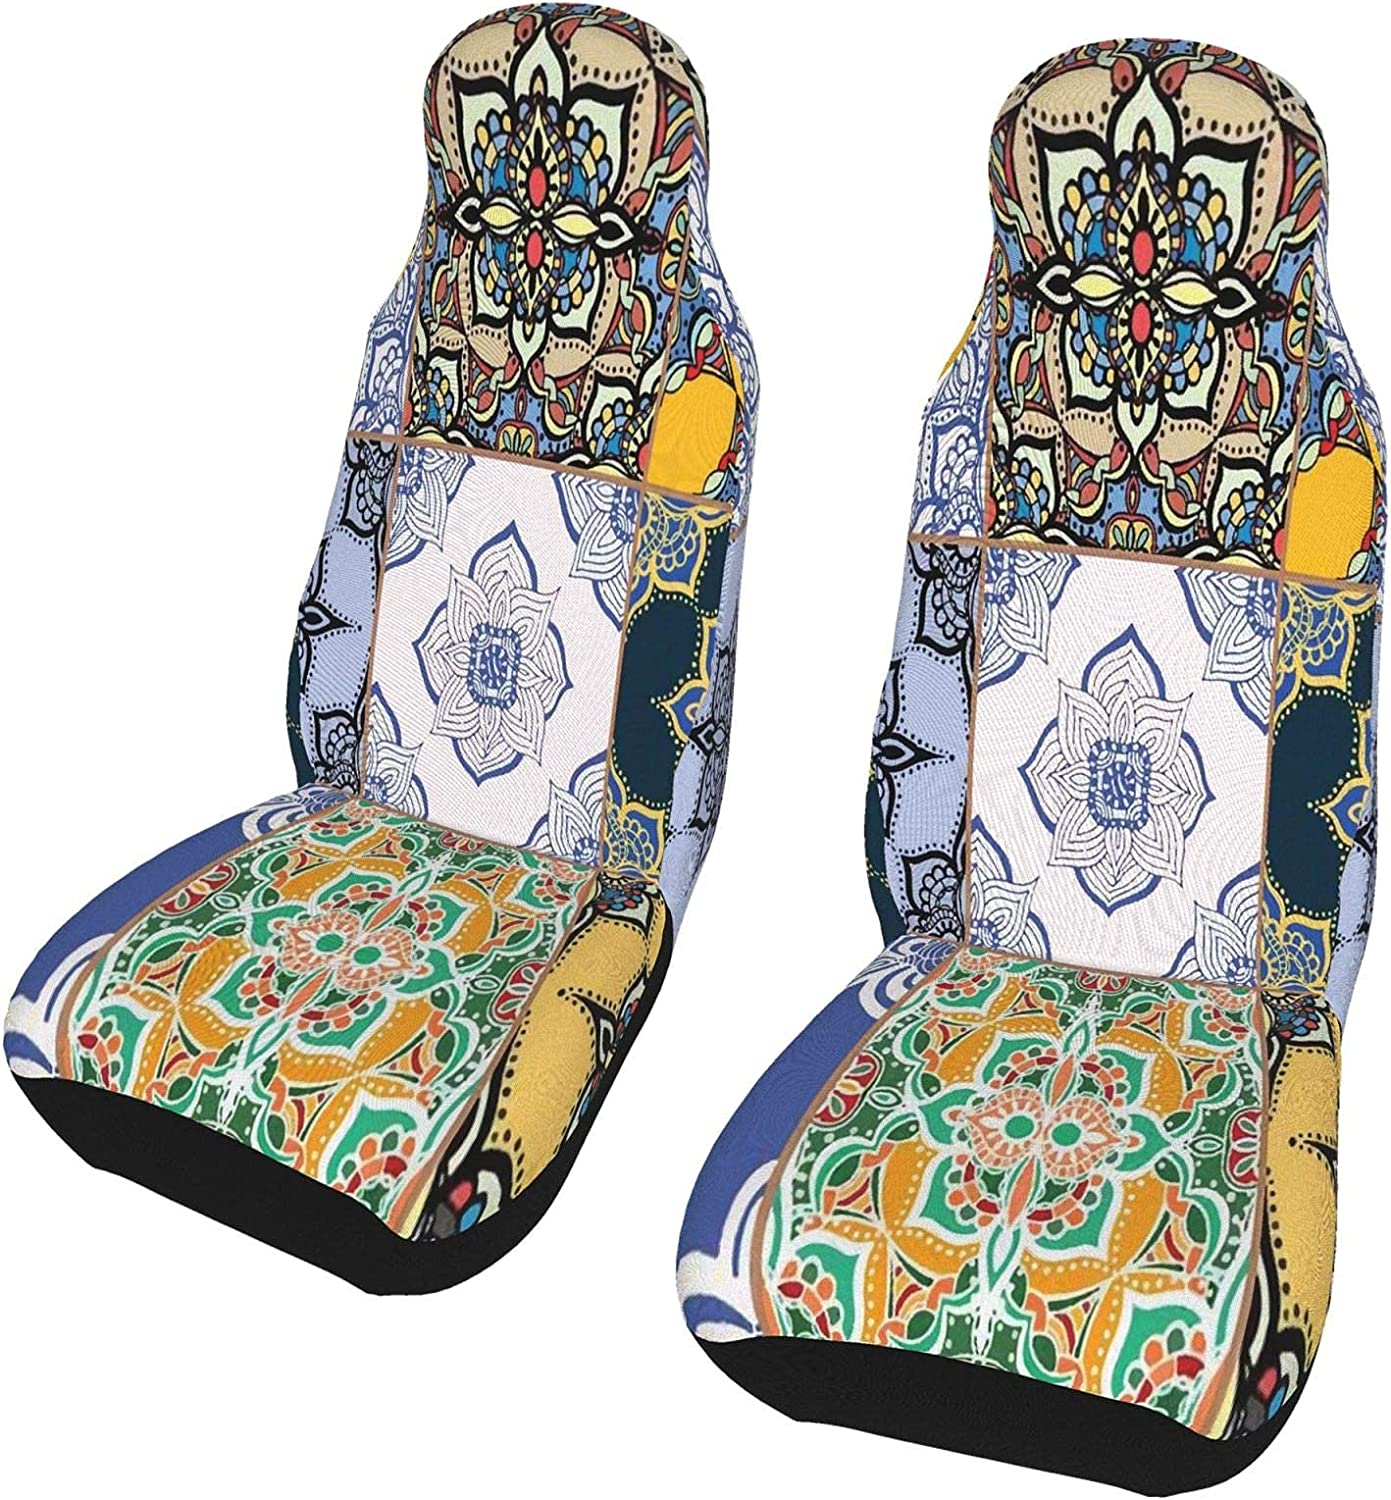 Car Front Seat Covers Max 53% OFF Portuguese Pcs Full Genuine 2 Cover Tiles